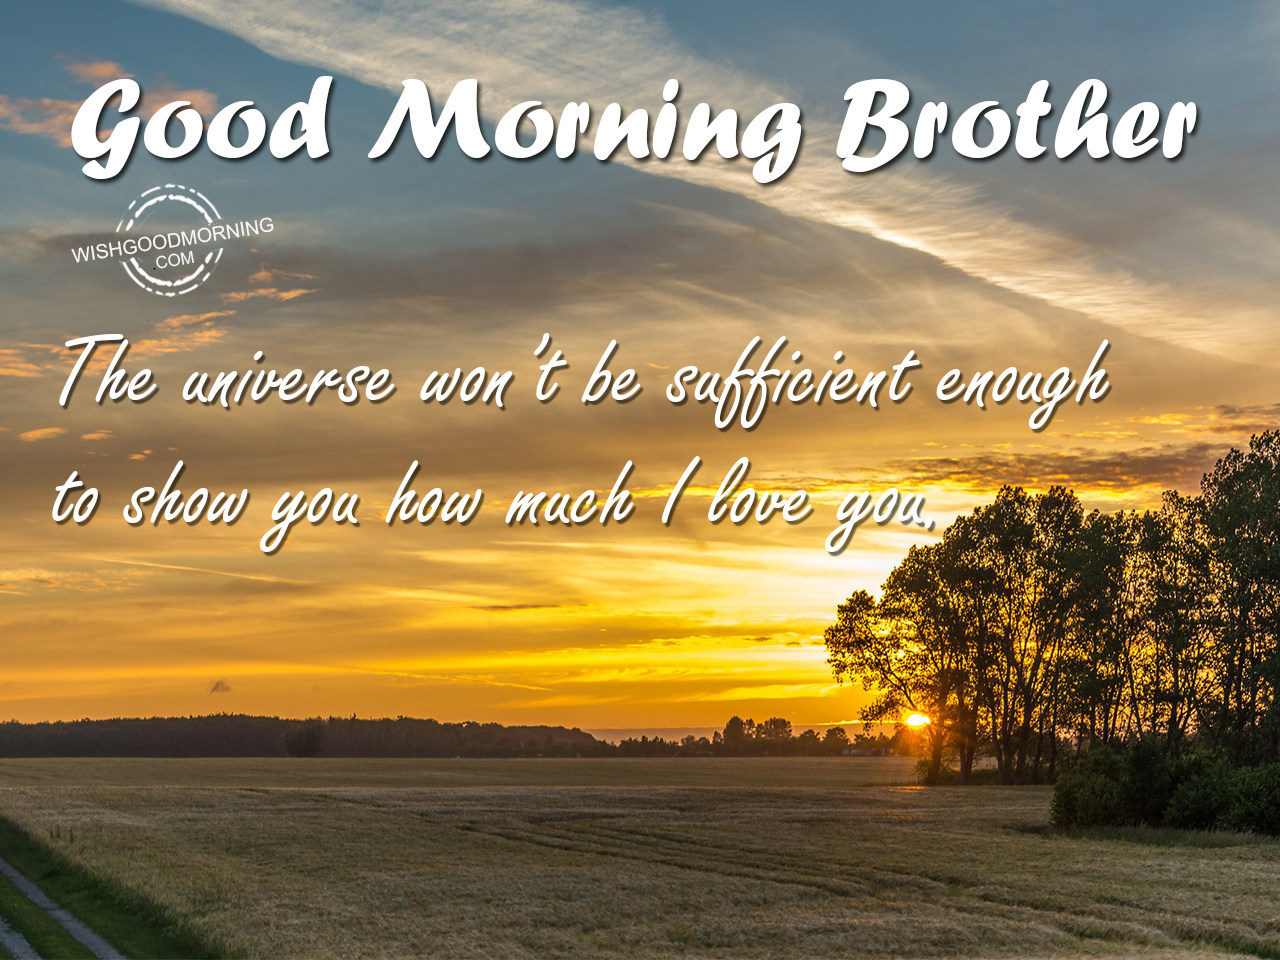 Good Morning Wishes For Brother - Good Morning Pictures